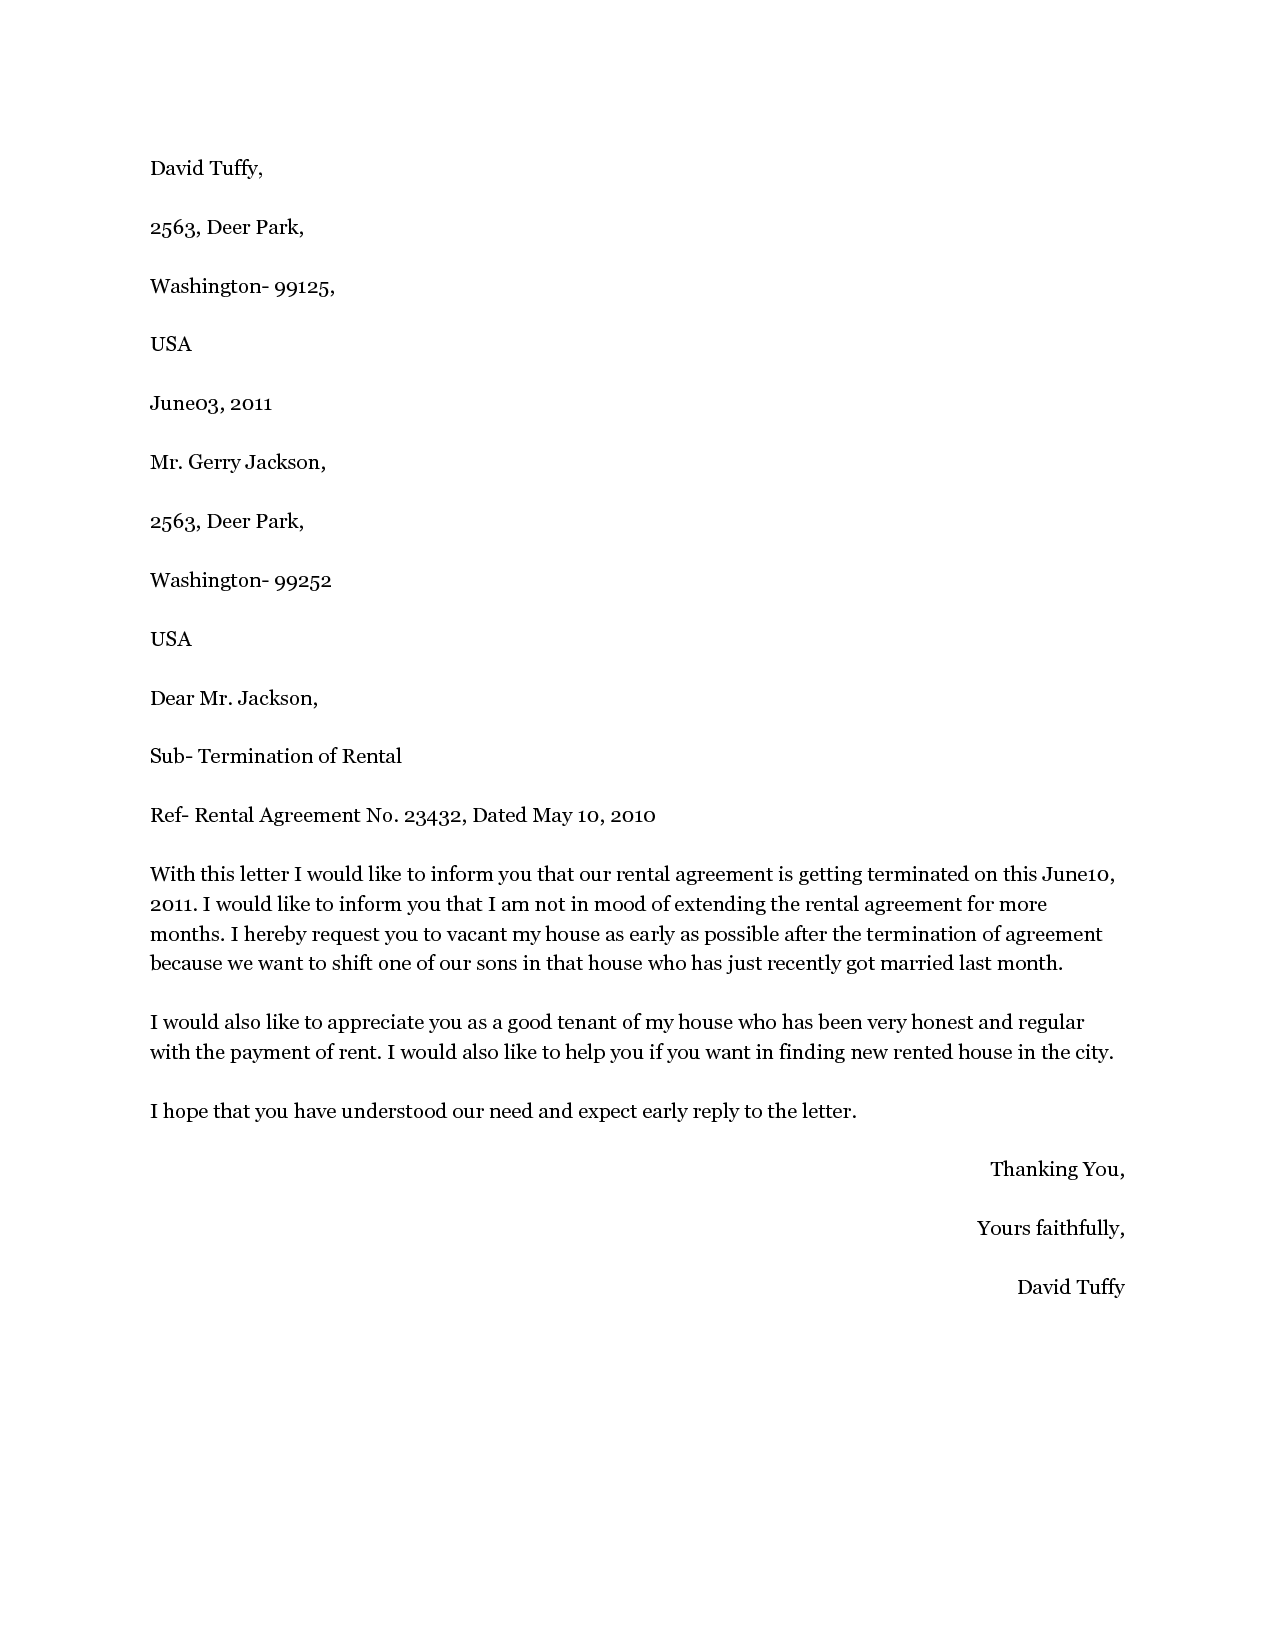 Lease Termination Letters Agreement Letter Sample Editable Rental